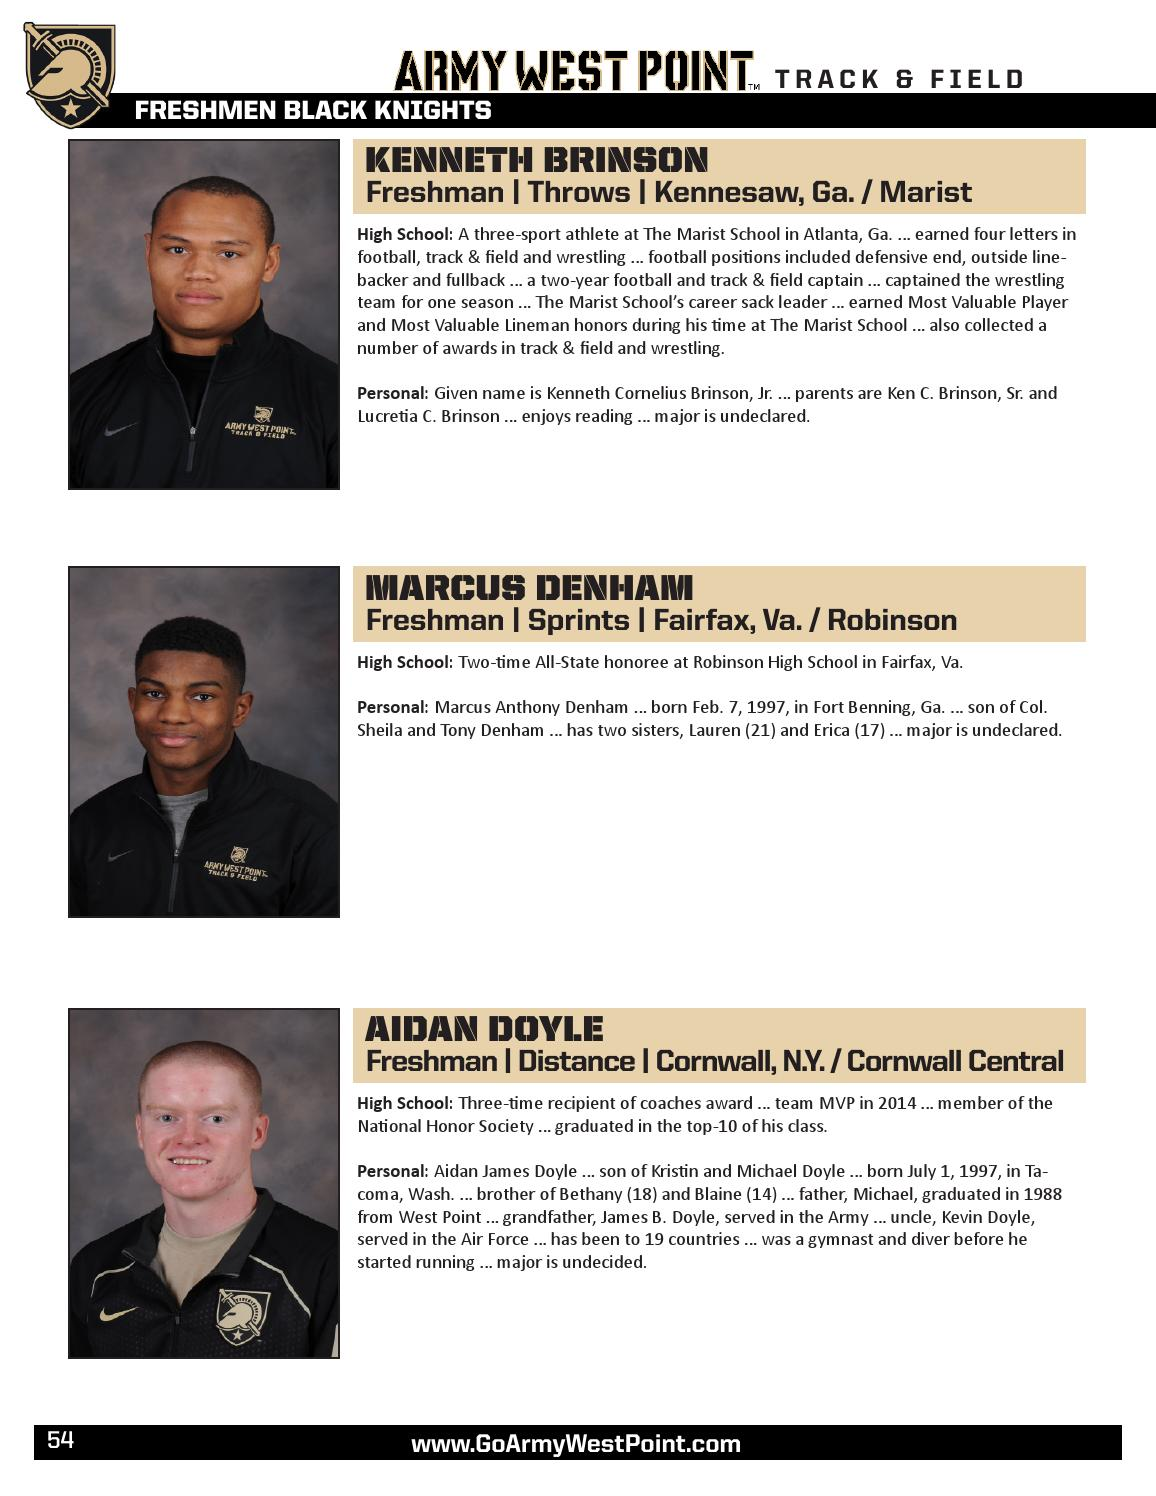 2015-16 Men's Track & Field Media Guide by Army West Point Athletics